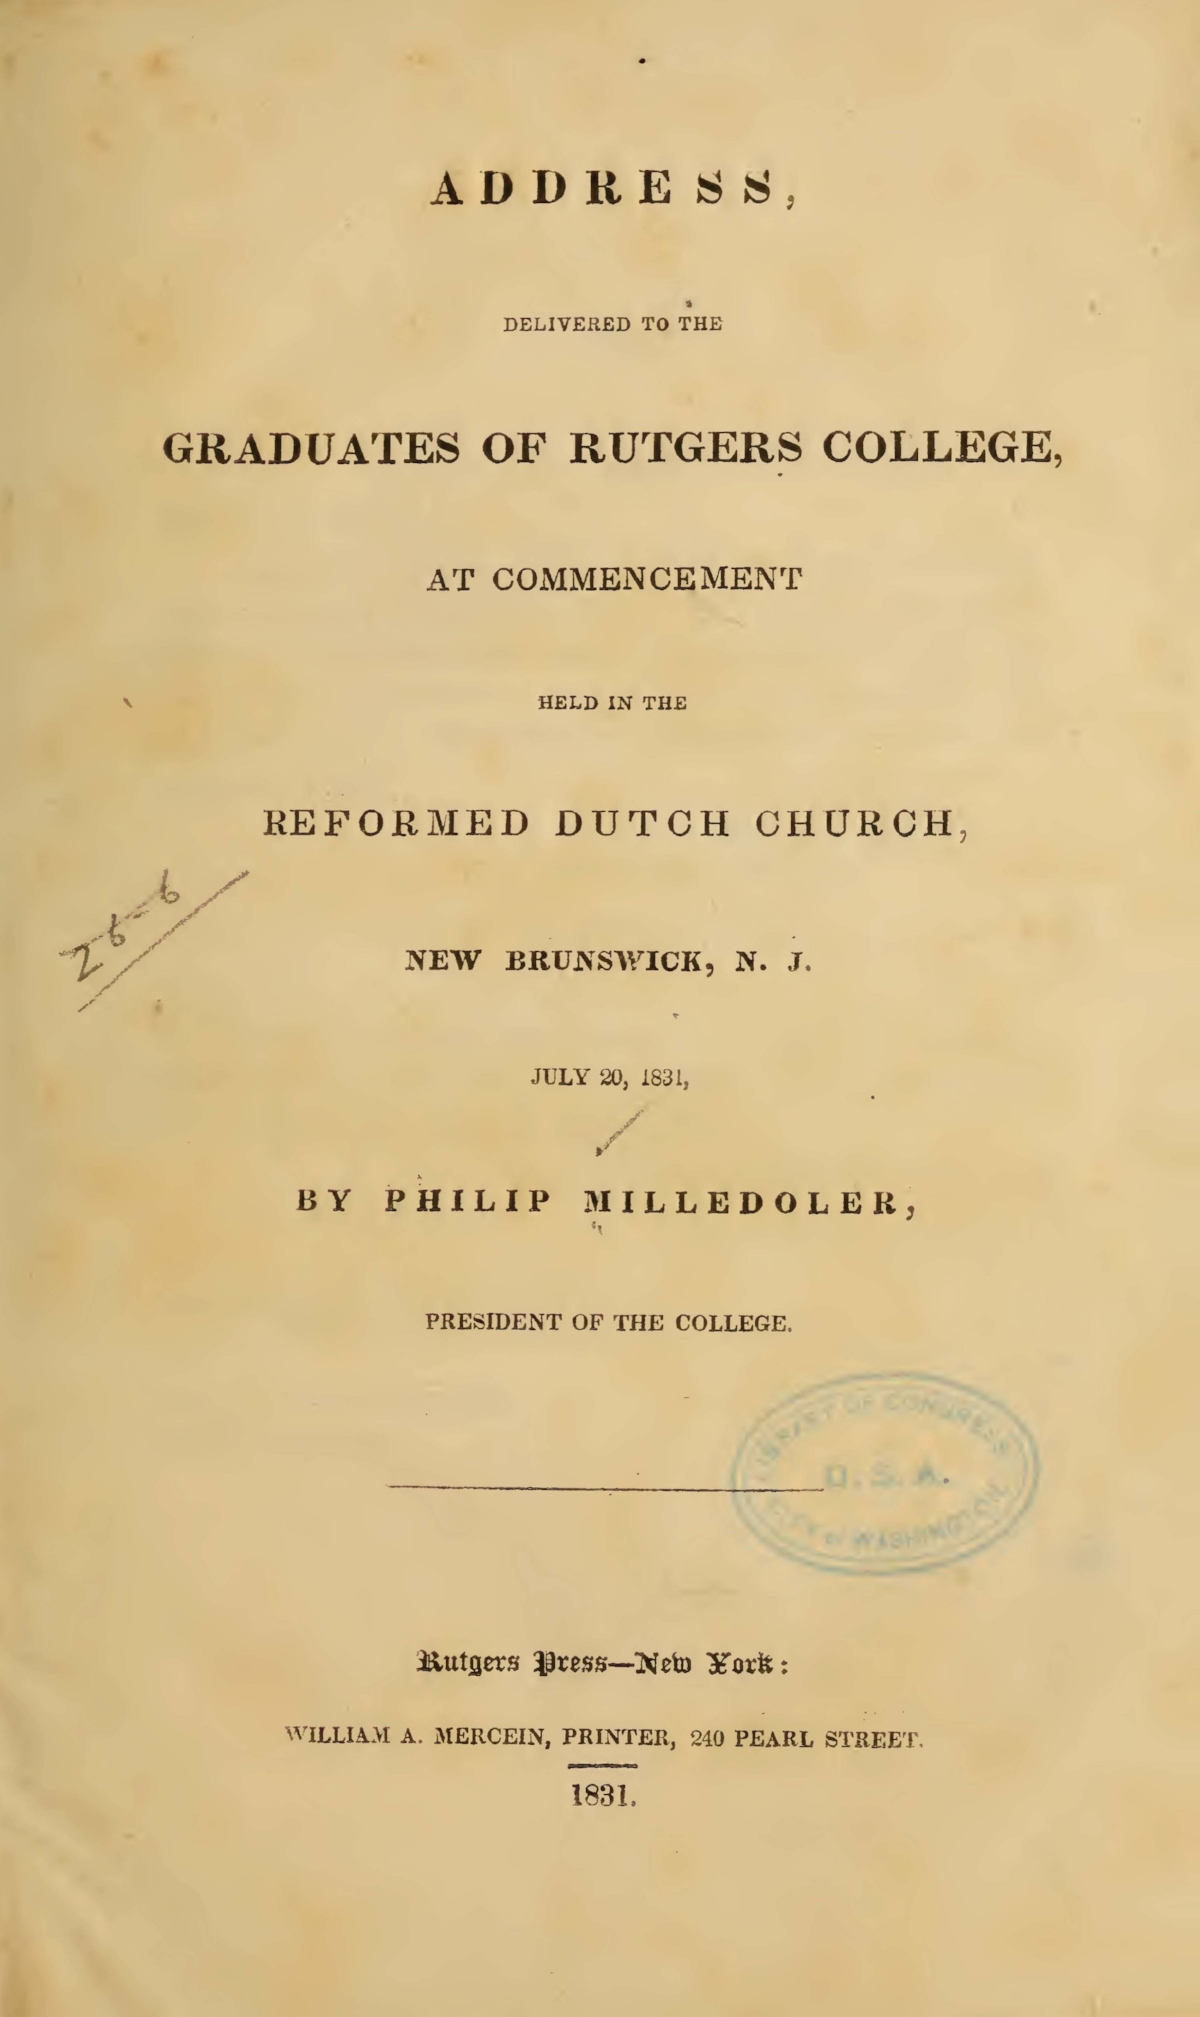 Milledoler, Philip, Address, Delivered to the Graduates of Rutgers College Title Page.jpg